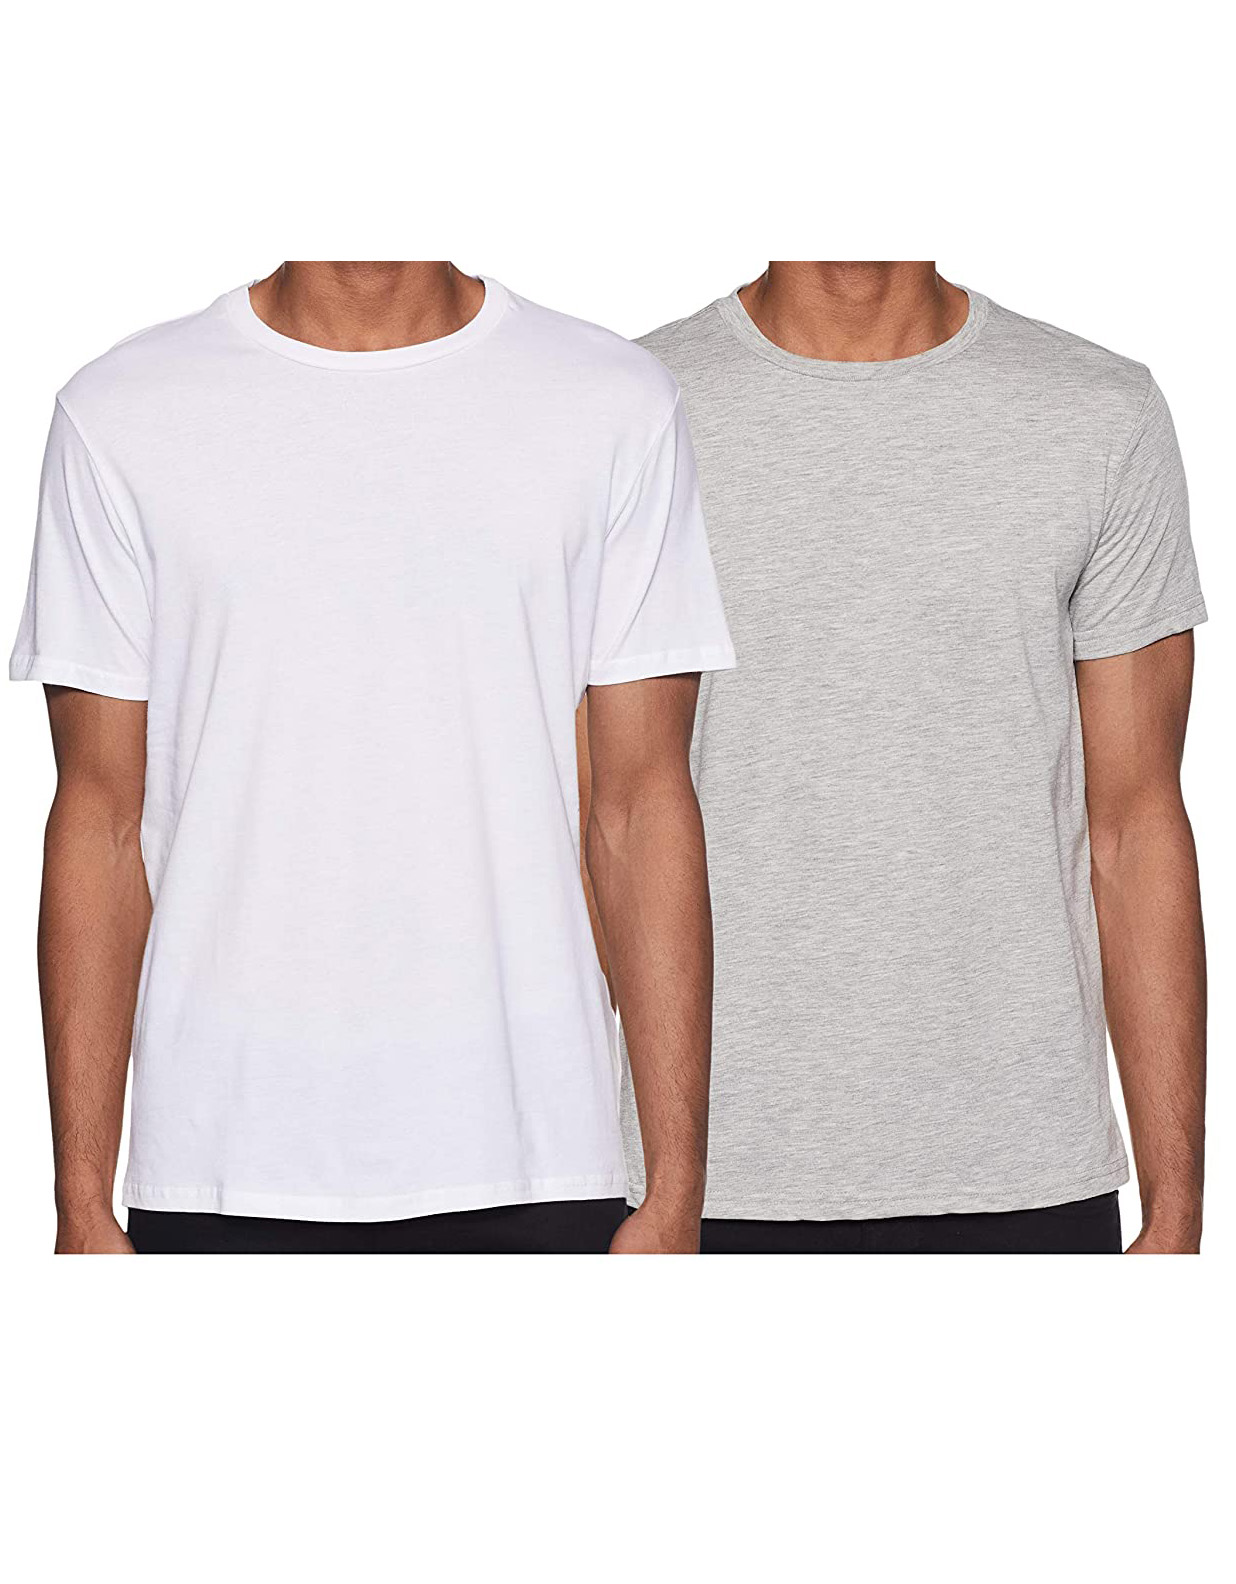 Cotton T Shirts Combo